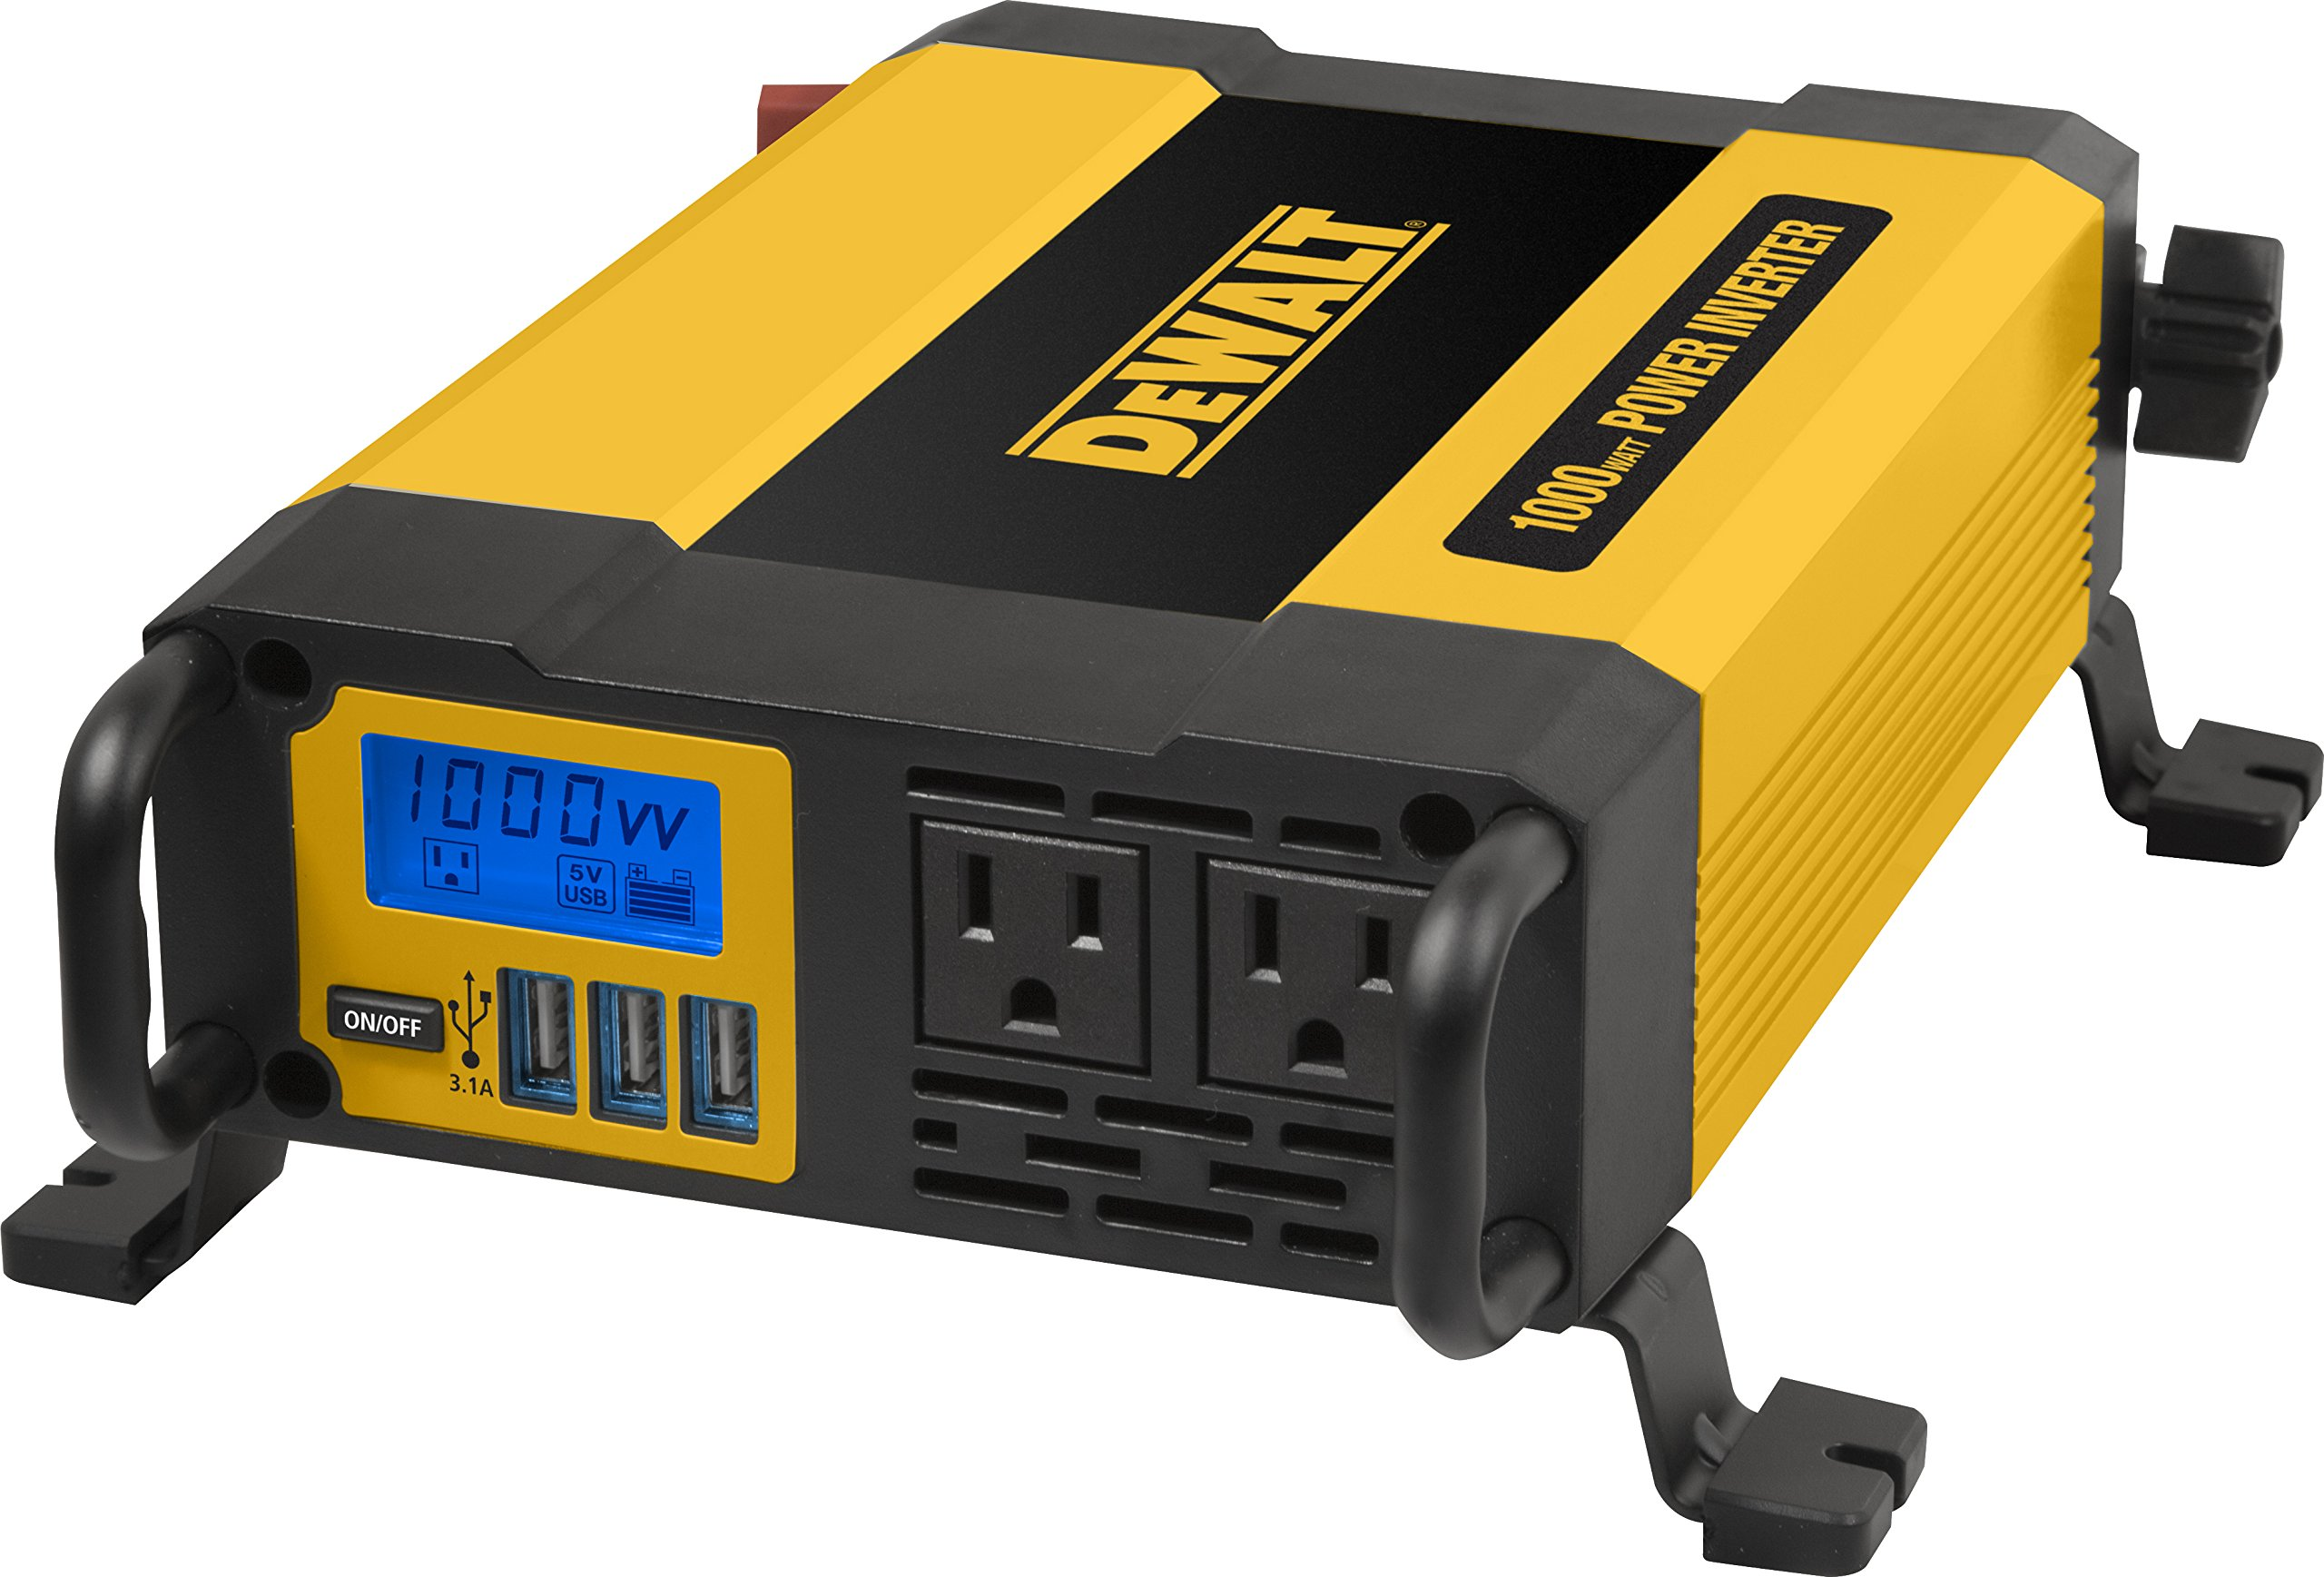 DEWALT DXAEPI1000 Power Inverter 1000W Car Converter With LCD Display: Dual 120V AC Outlets, 3.1A USB